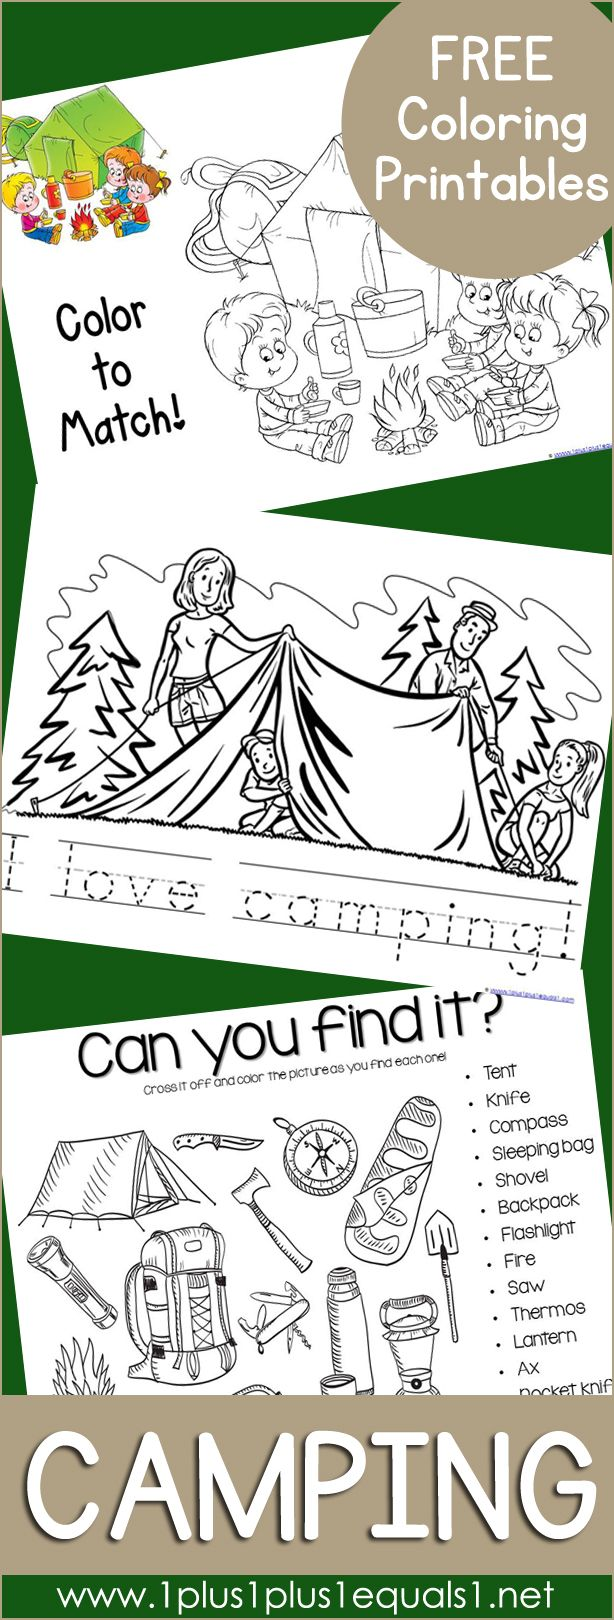 free camping coloring printables coloring activities and coloring pages for kids - Free Color Printables